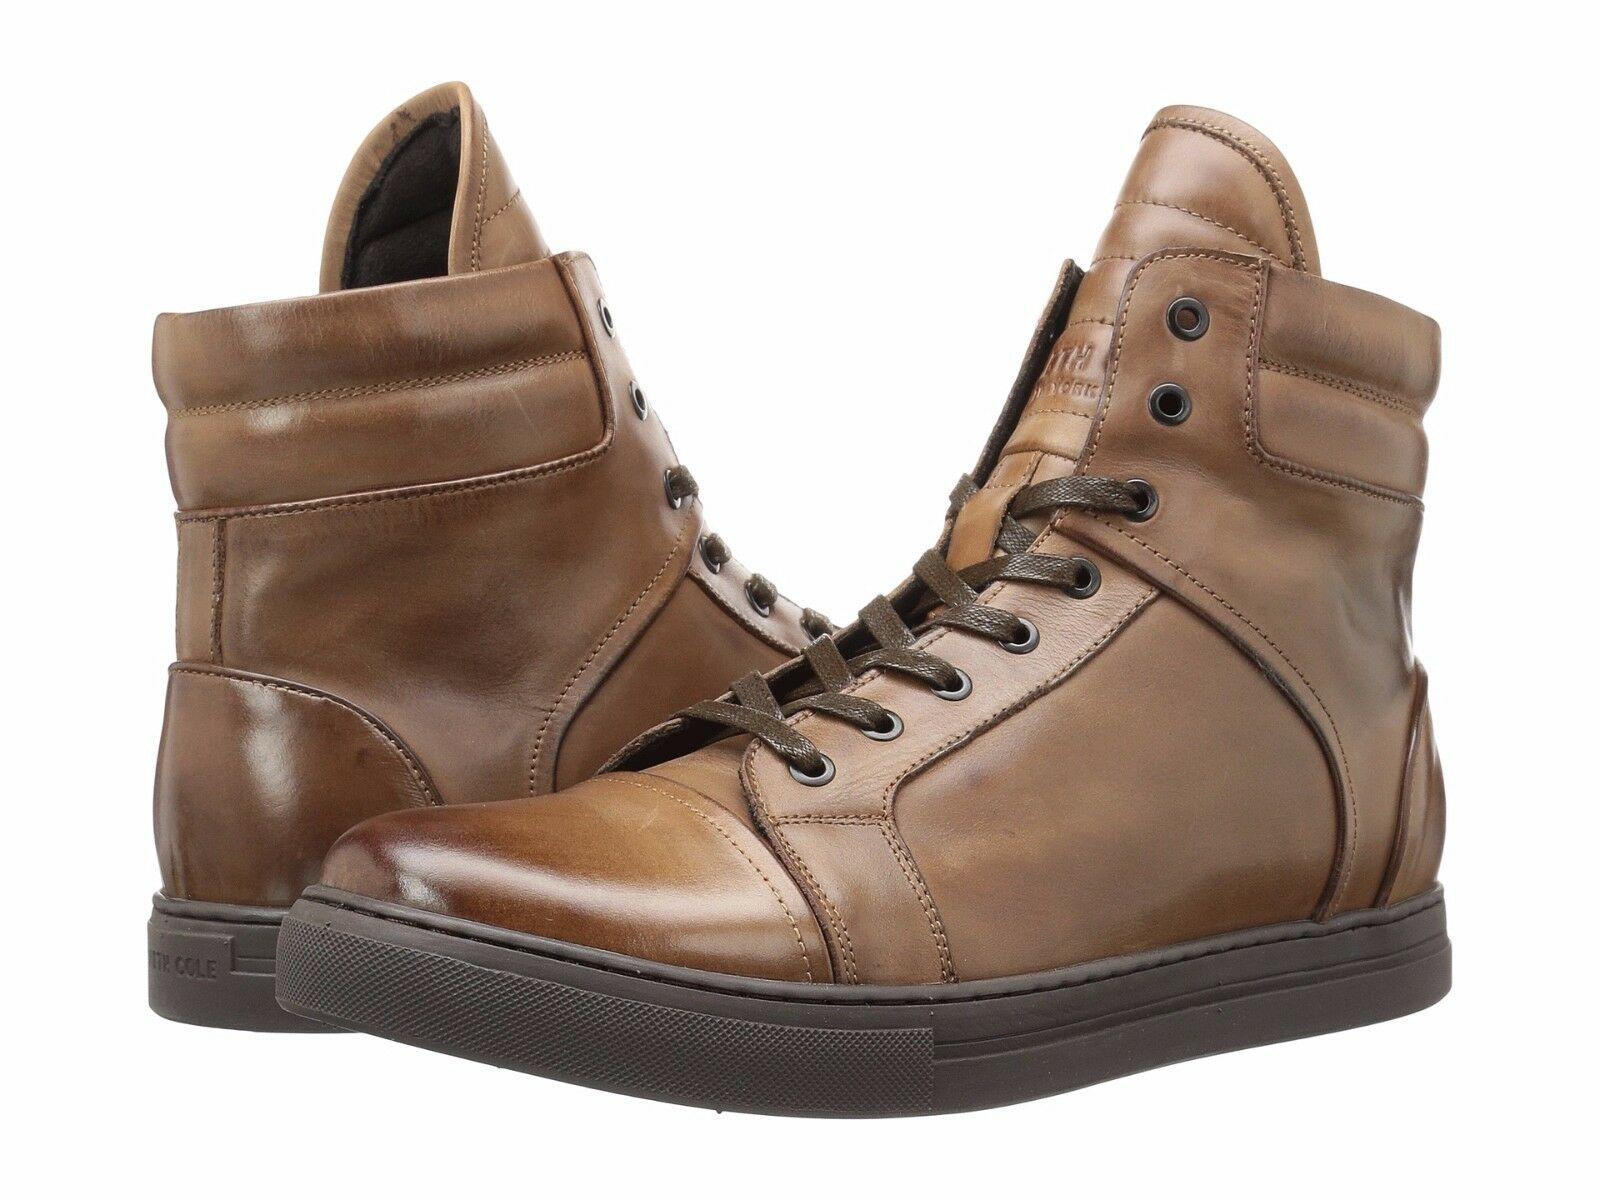 Uomo Shoes Kenneth Cole Double Header High Top Sneaker KMFLE036 Brown  *New*